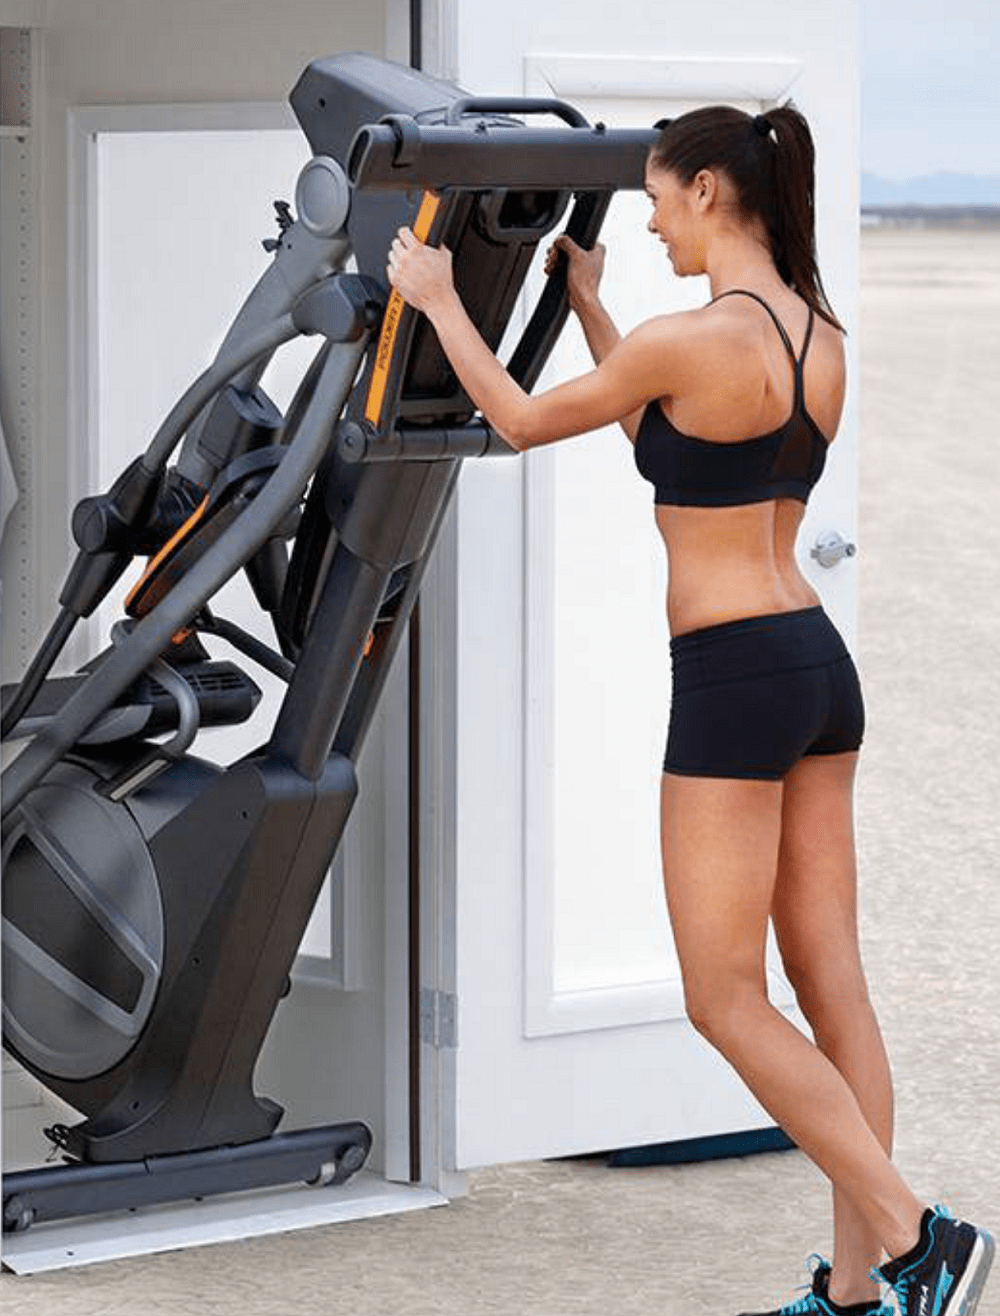 Fitness Model with Elliptical Machine